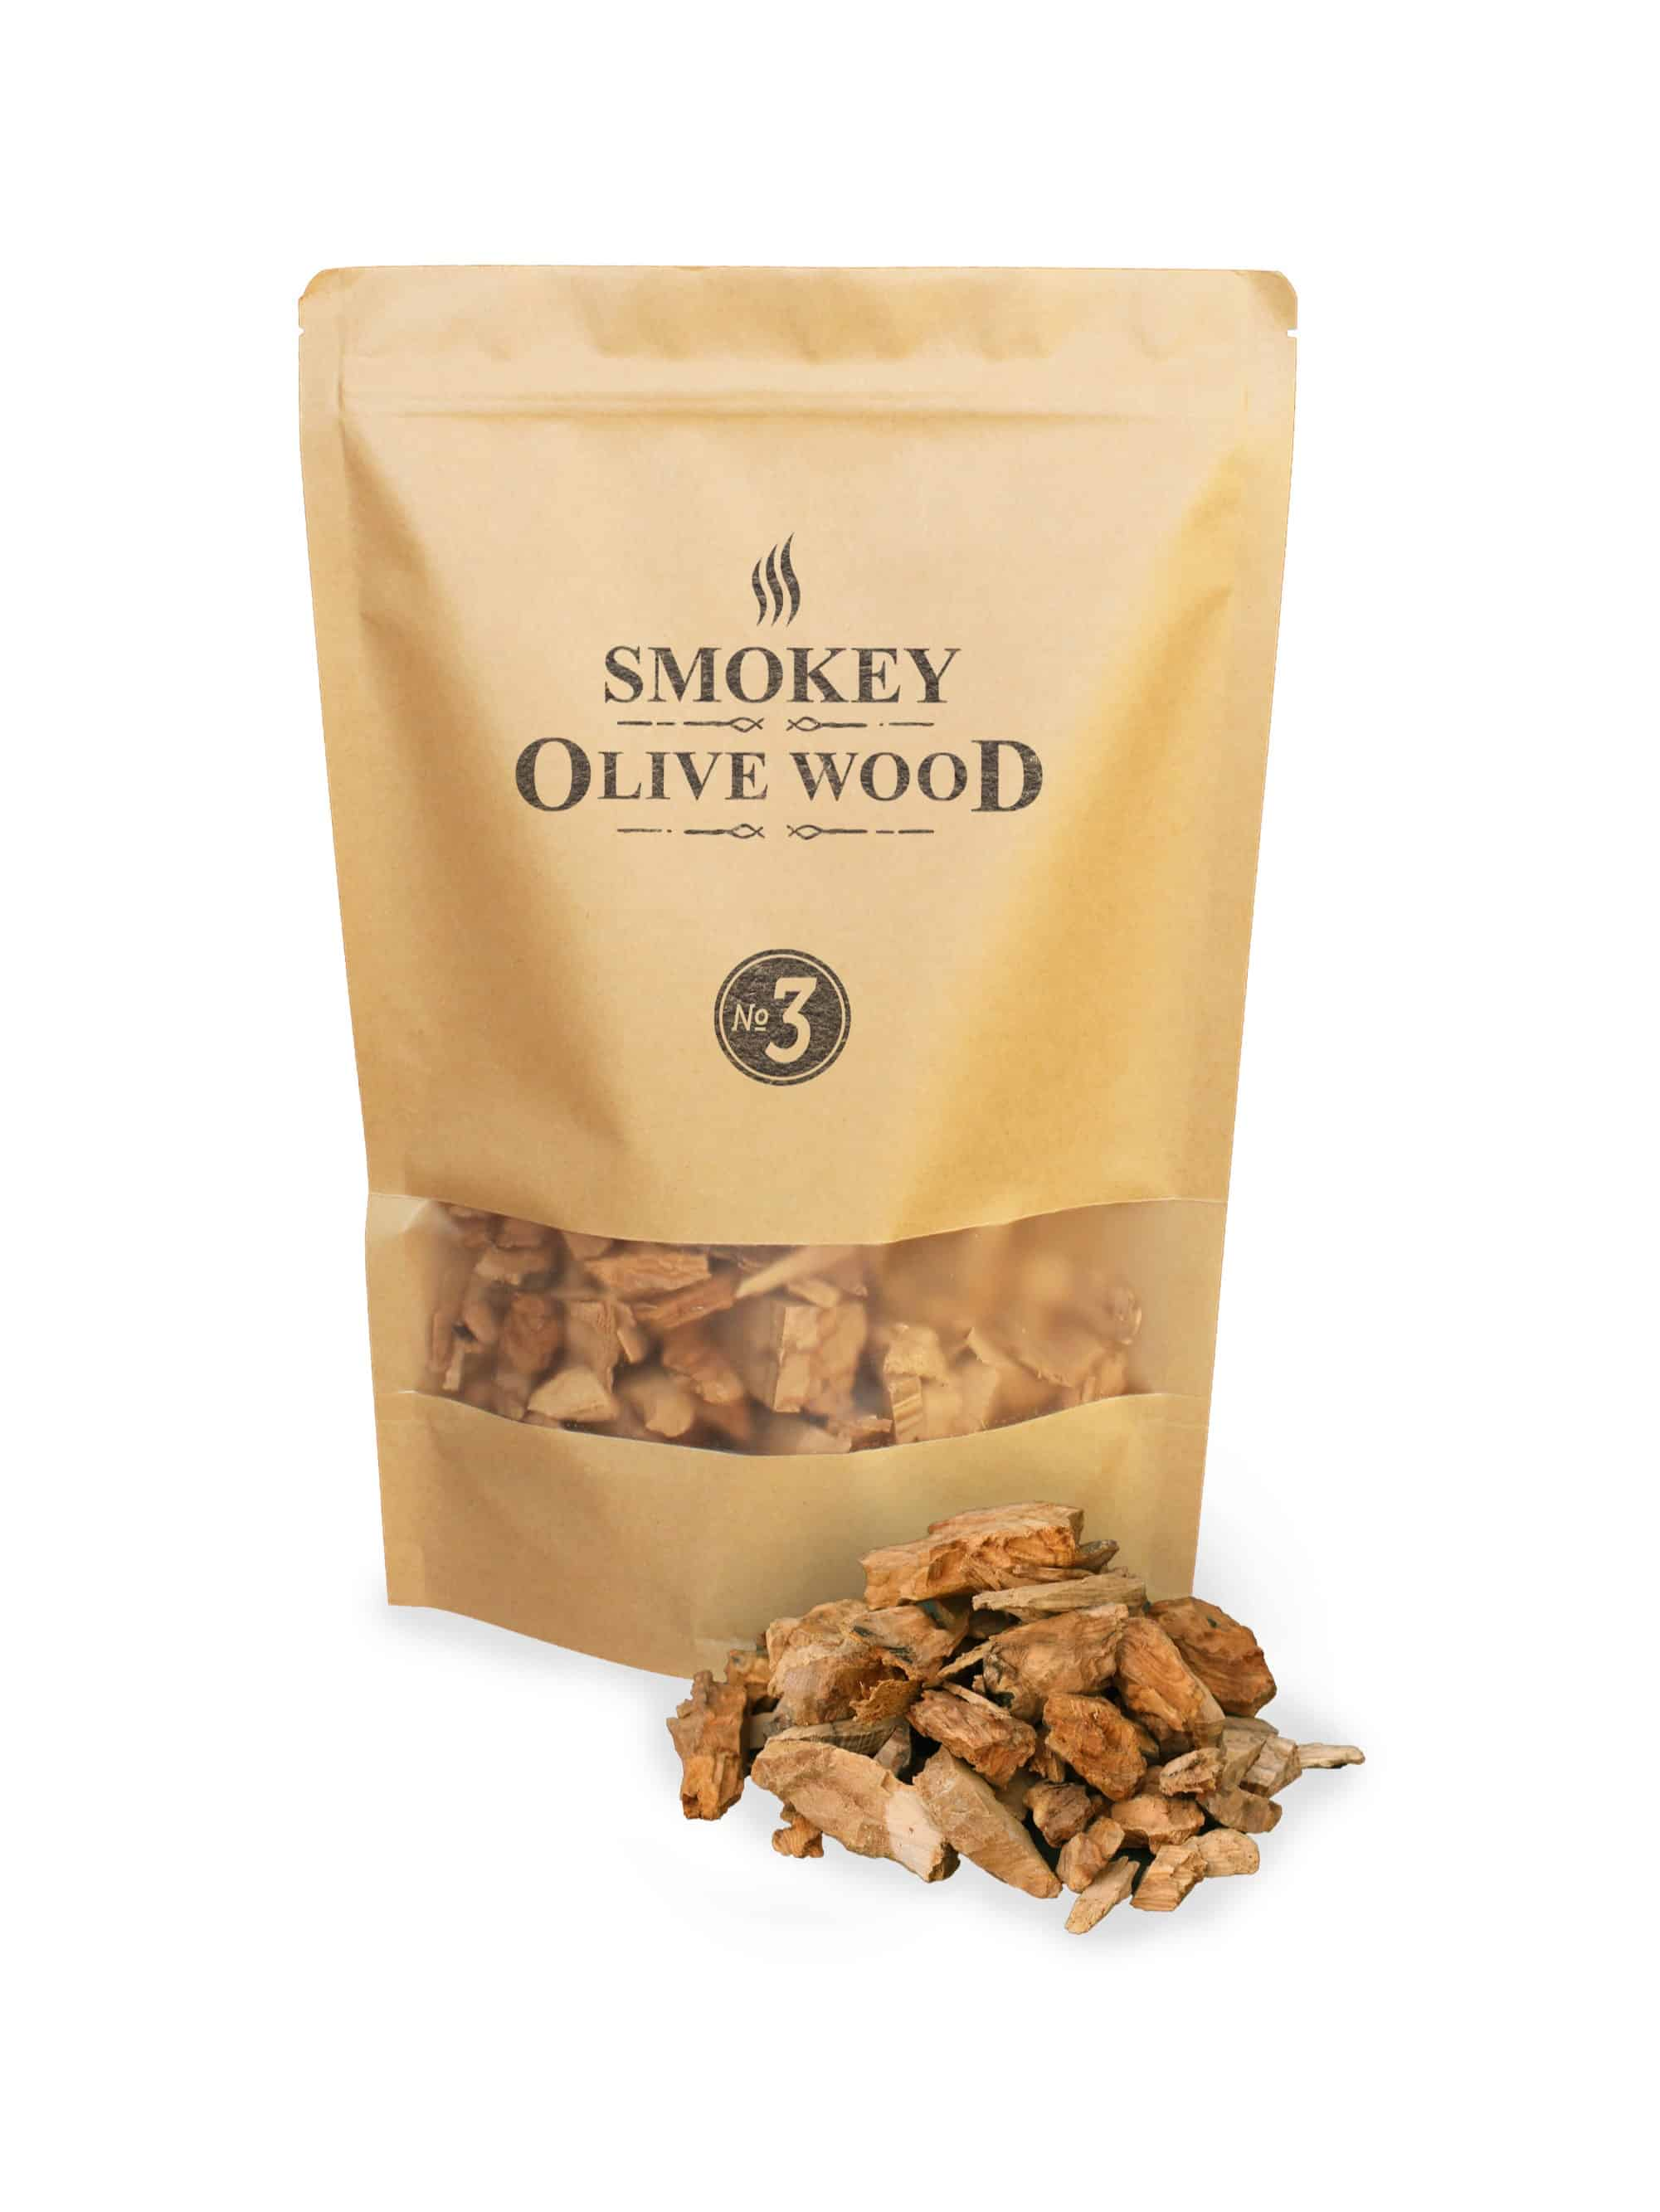 Smokey Olive Wood rookchips Nº3 Smoker BBQ Chips Grill rooken